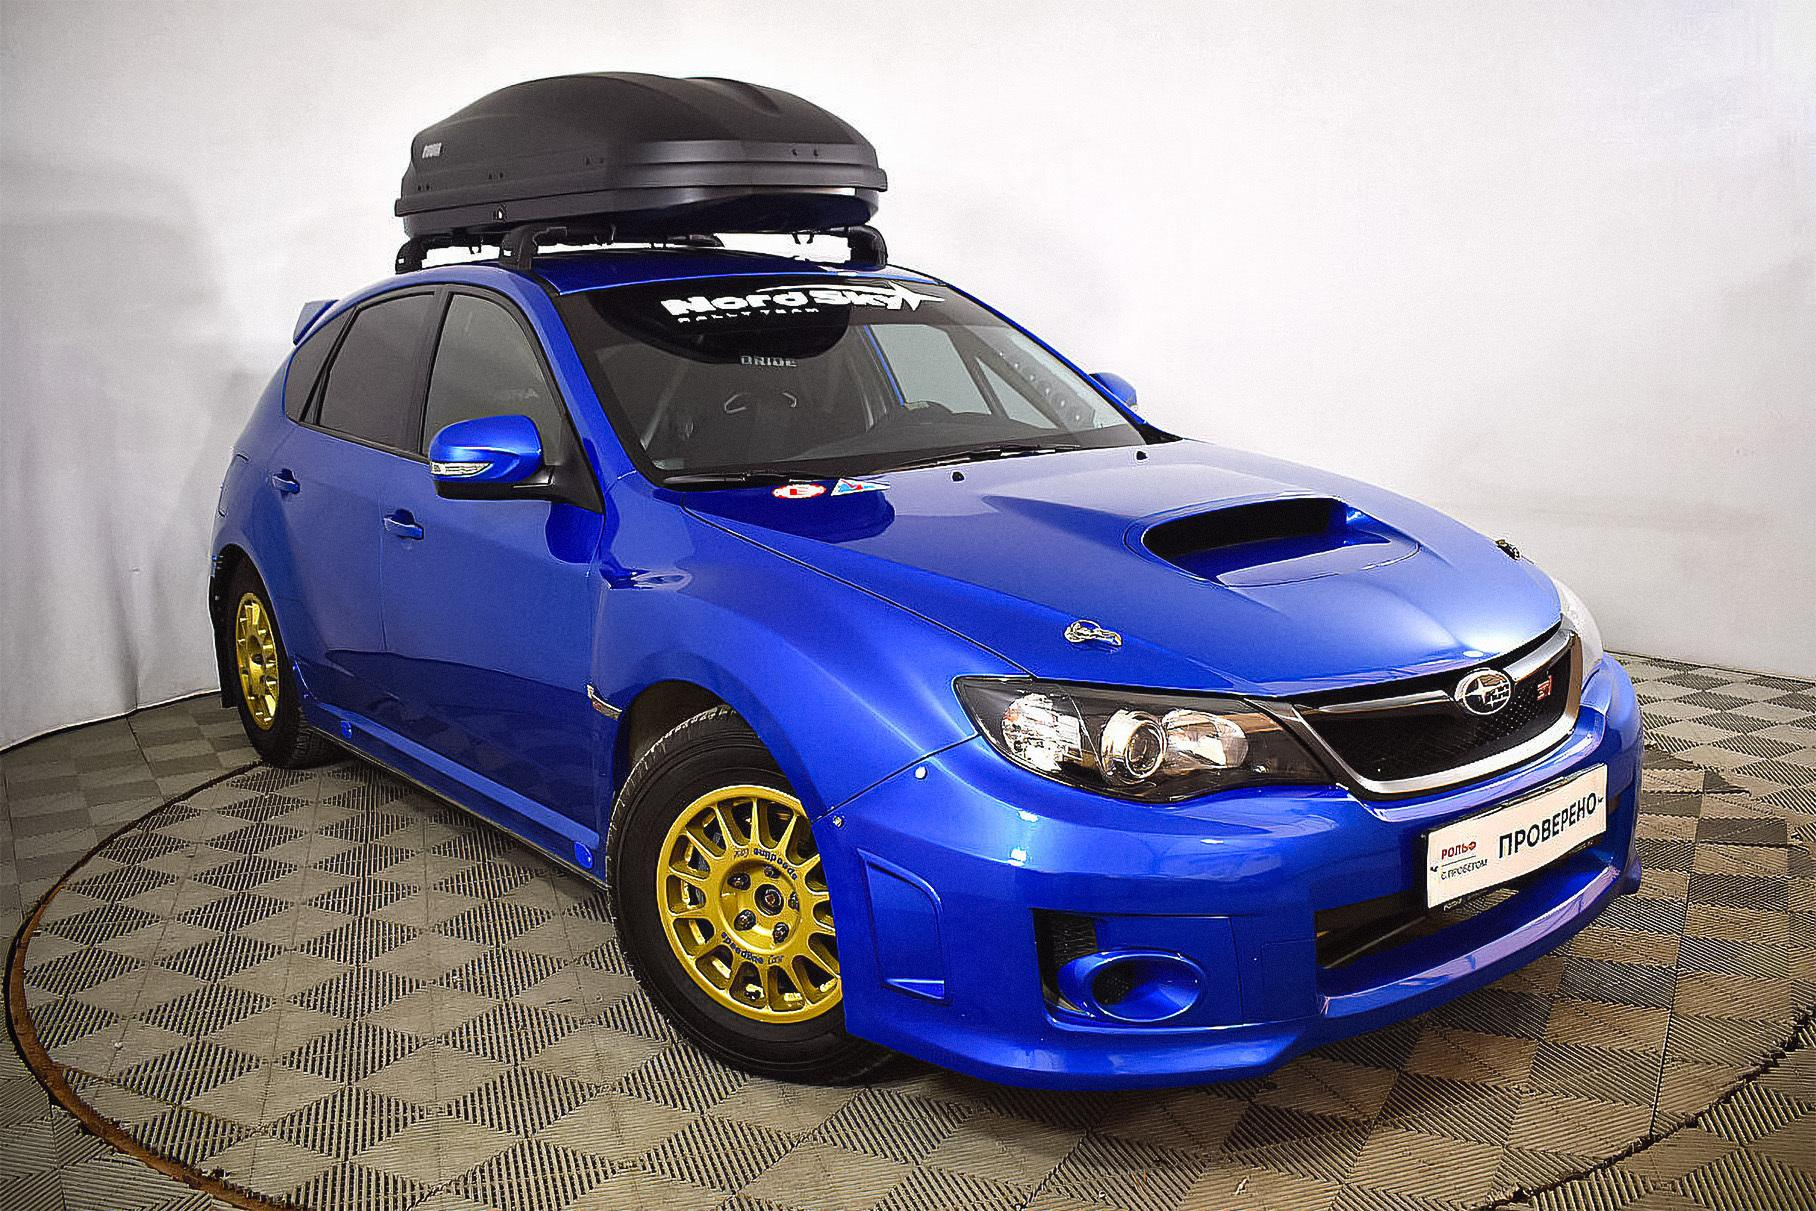 A 14-year-old, low-mileage, track-focused Subaru Impreza WRX STi III is available in Russia right now, so let's see what it is about.